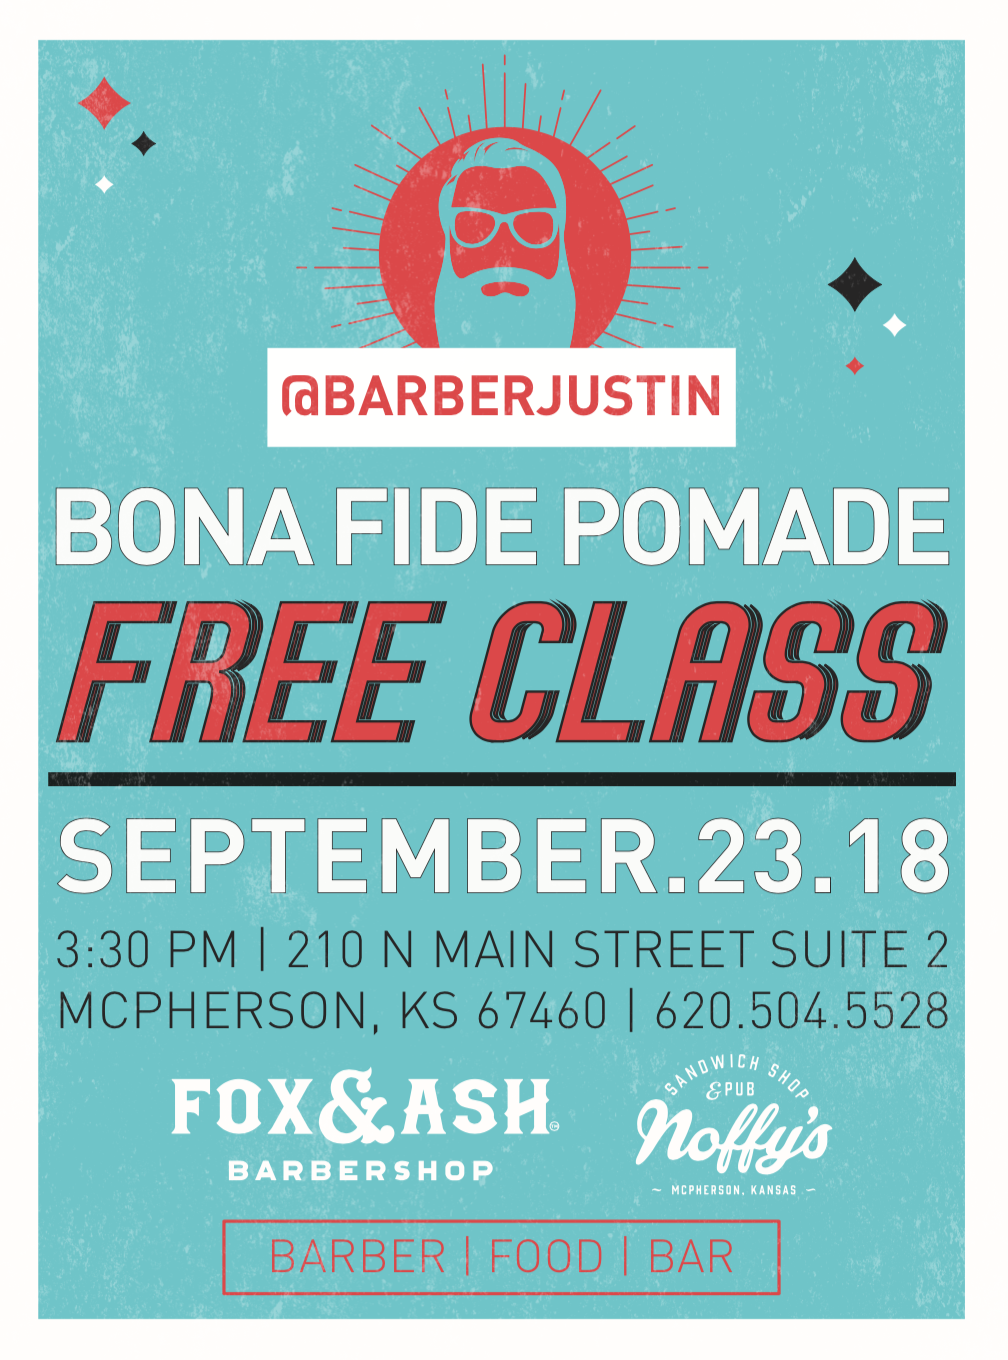 @barberjustin&@bonafidepomadeare coming to FOX & ASH // come learn, grub, and drink with us September 23rd. This event is open to the public- fellow students, barbers, and cosmetologists bring a friend or three! @jamescutshair will also be teaching a class on fading and braiding. - free bona fide class